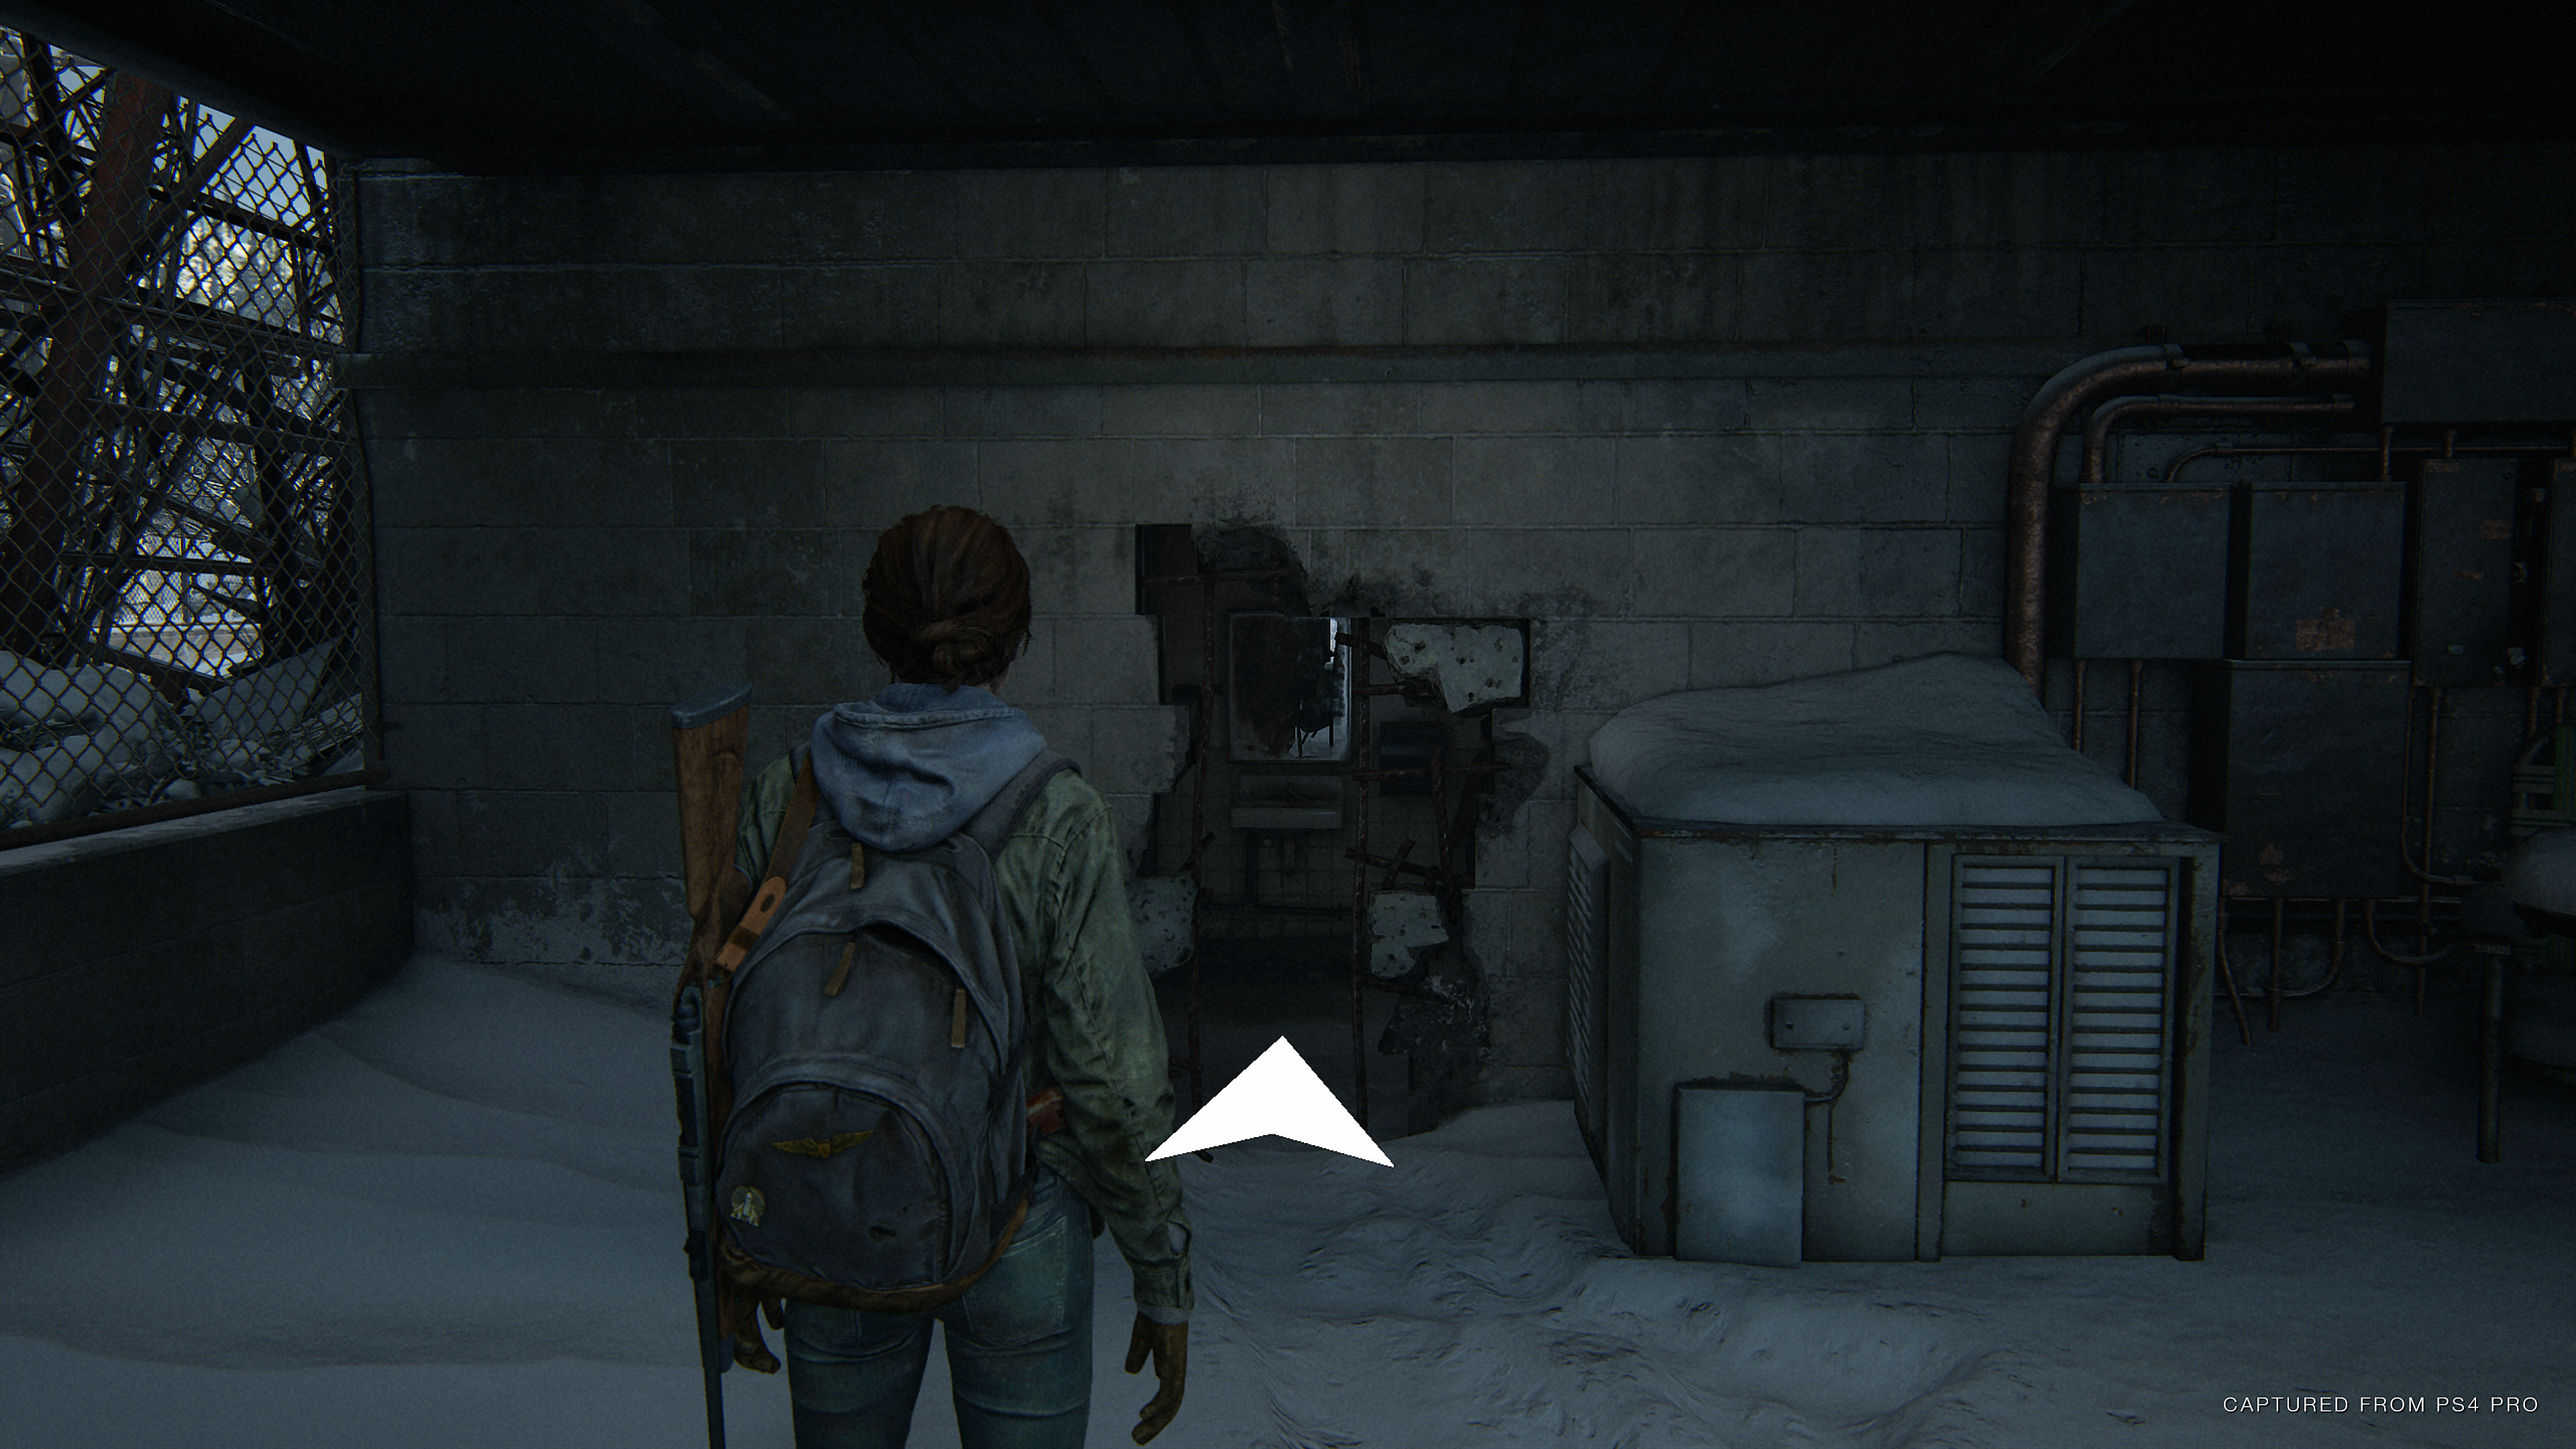 The player in front of a hole in the wall, with large arrow pointing towards it